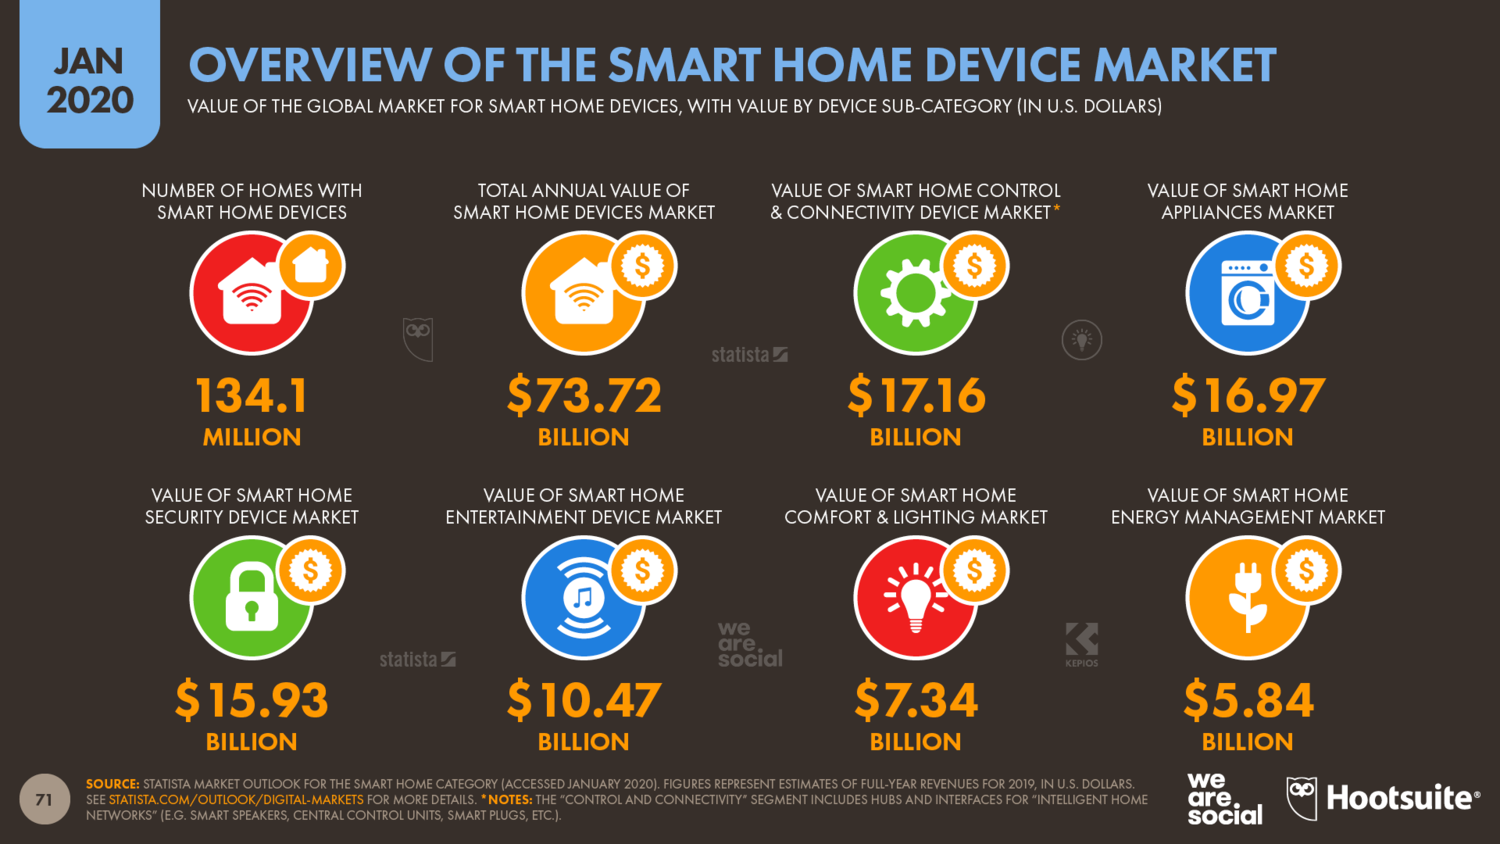 Overview+of+the+Smart+Home+Devices+Market+January+2020+DataReportal